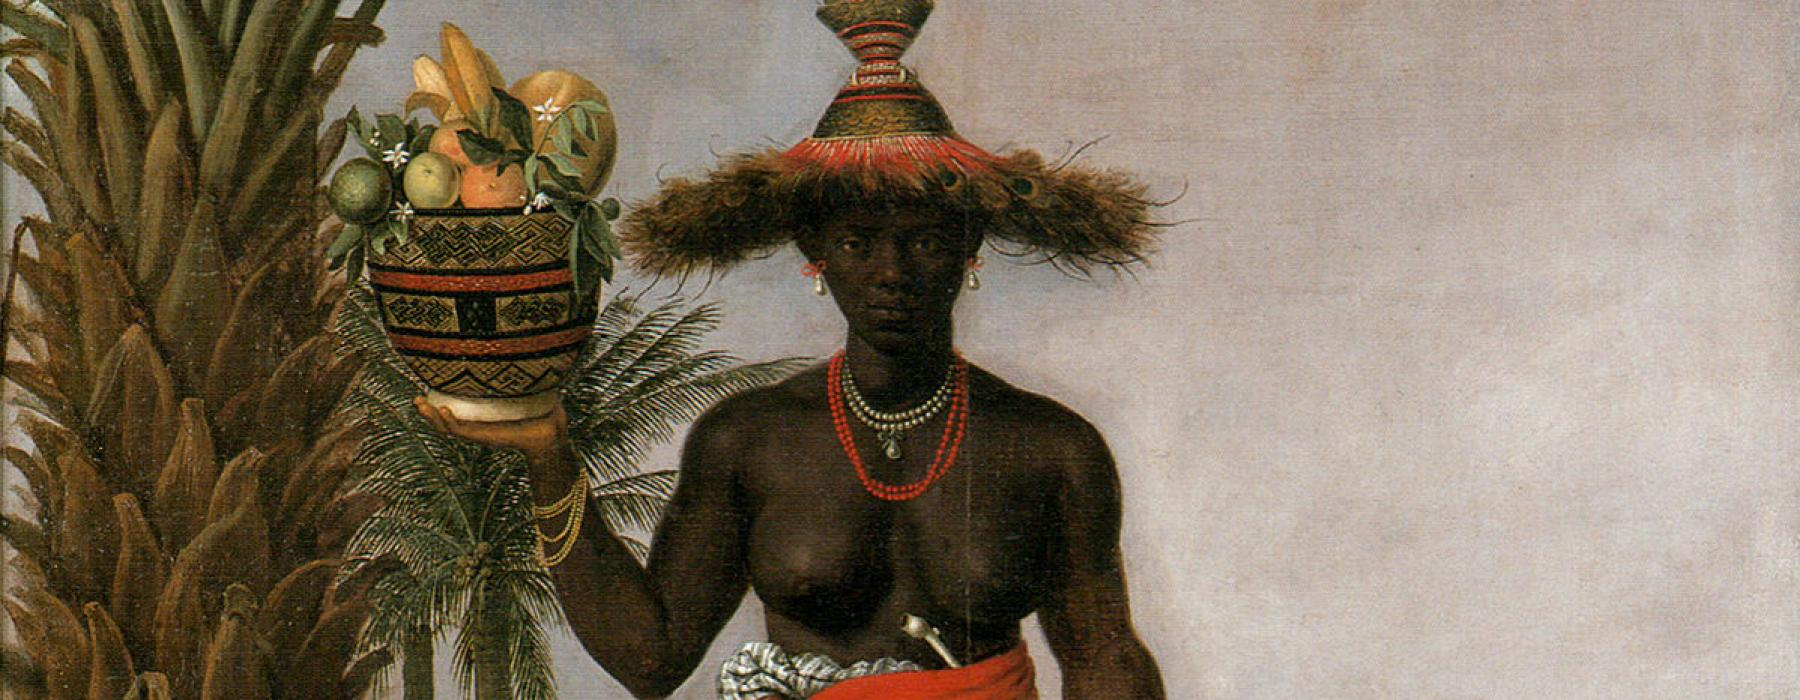 Albert Eckhout, African Woman and Child, 1641, oil on canvas, National Museum of Denmark.